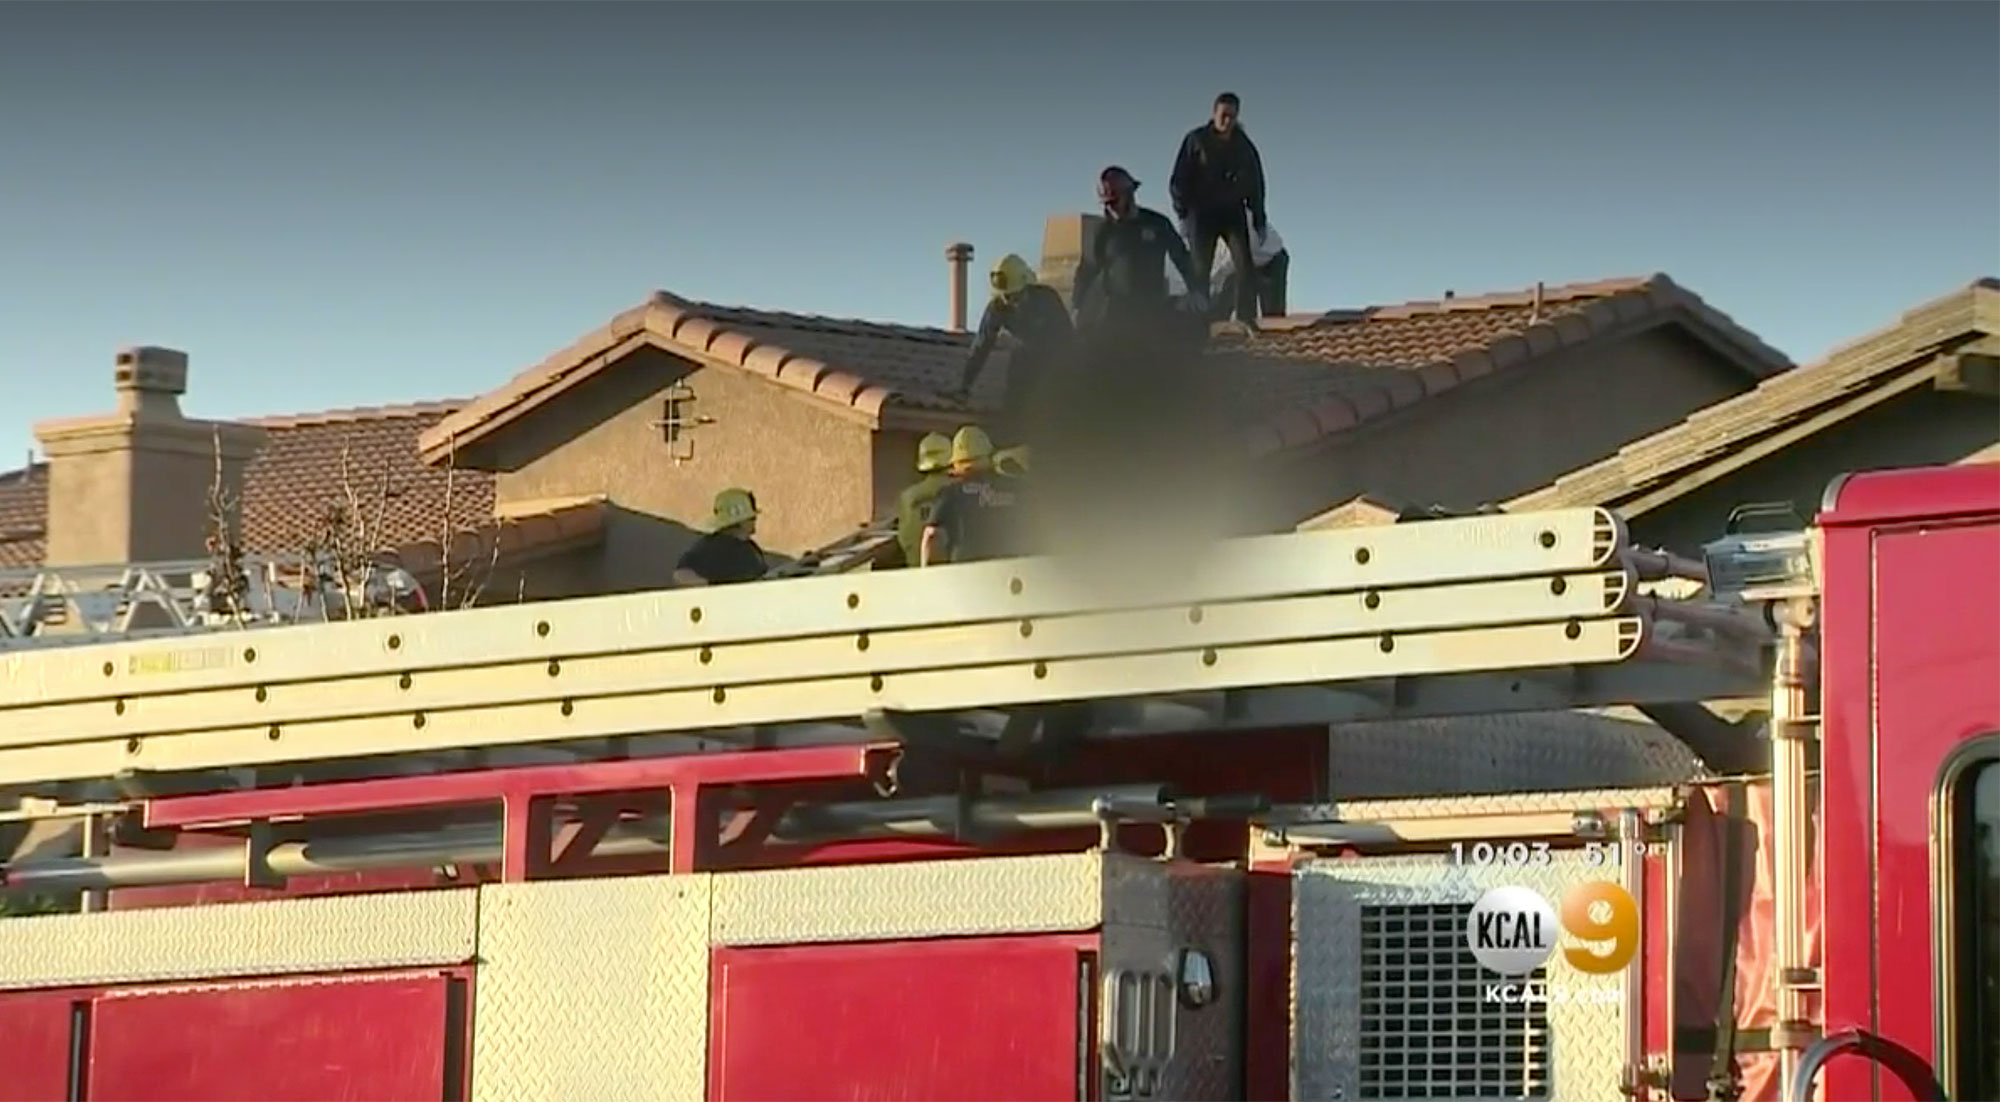 A skydiver landed on a roof in california and diedCredit: KCAL